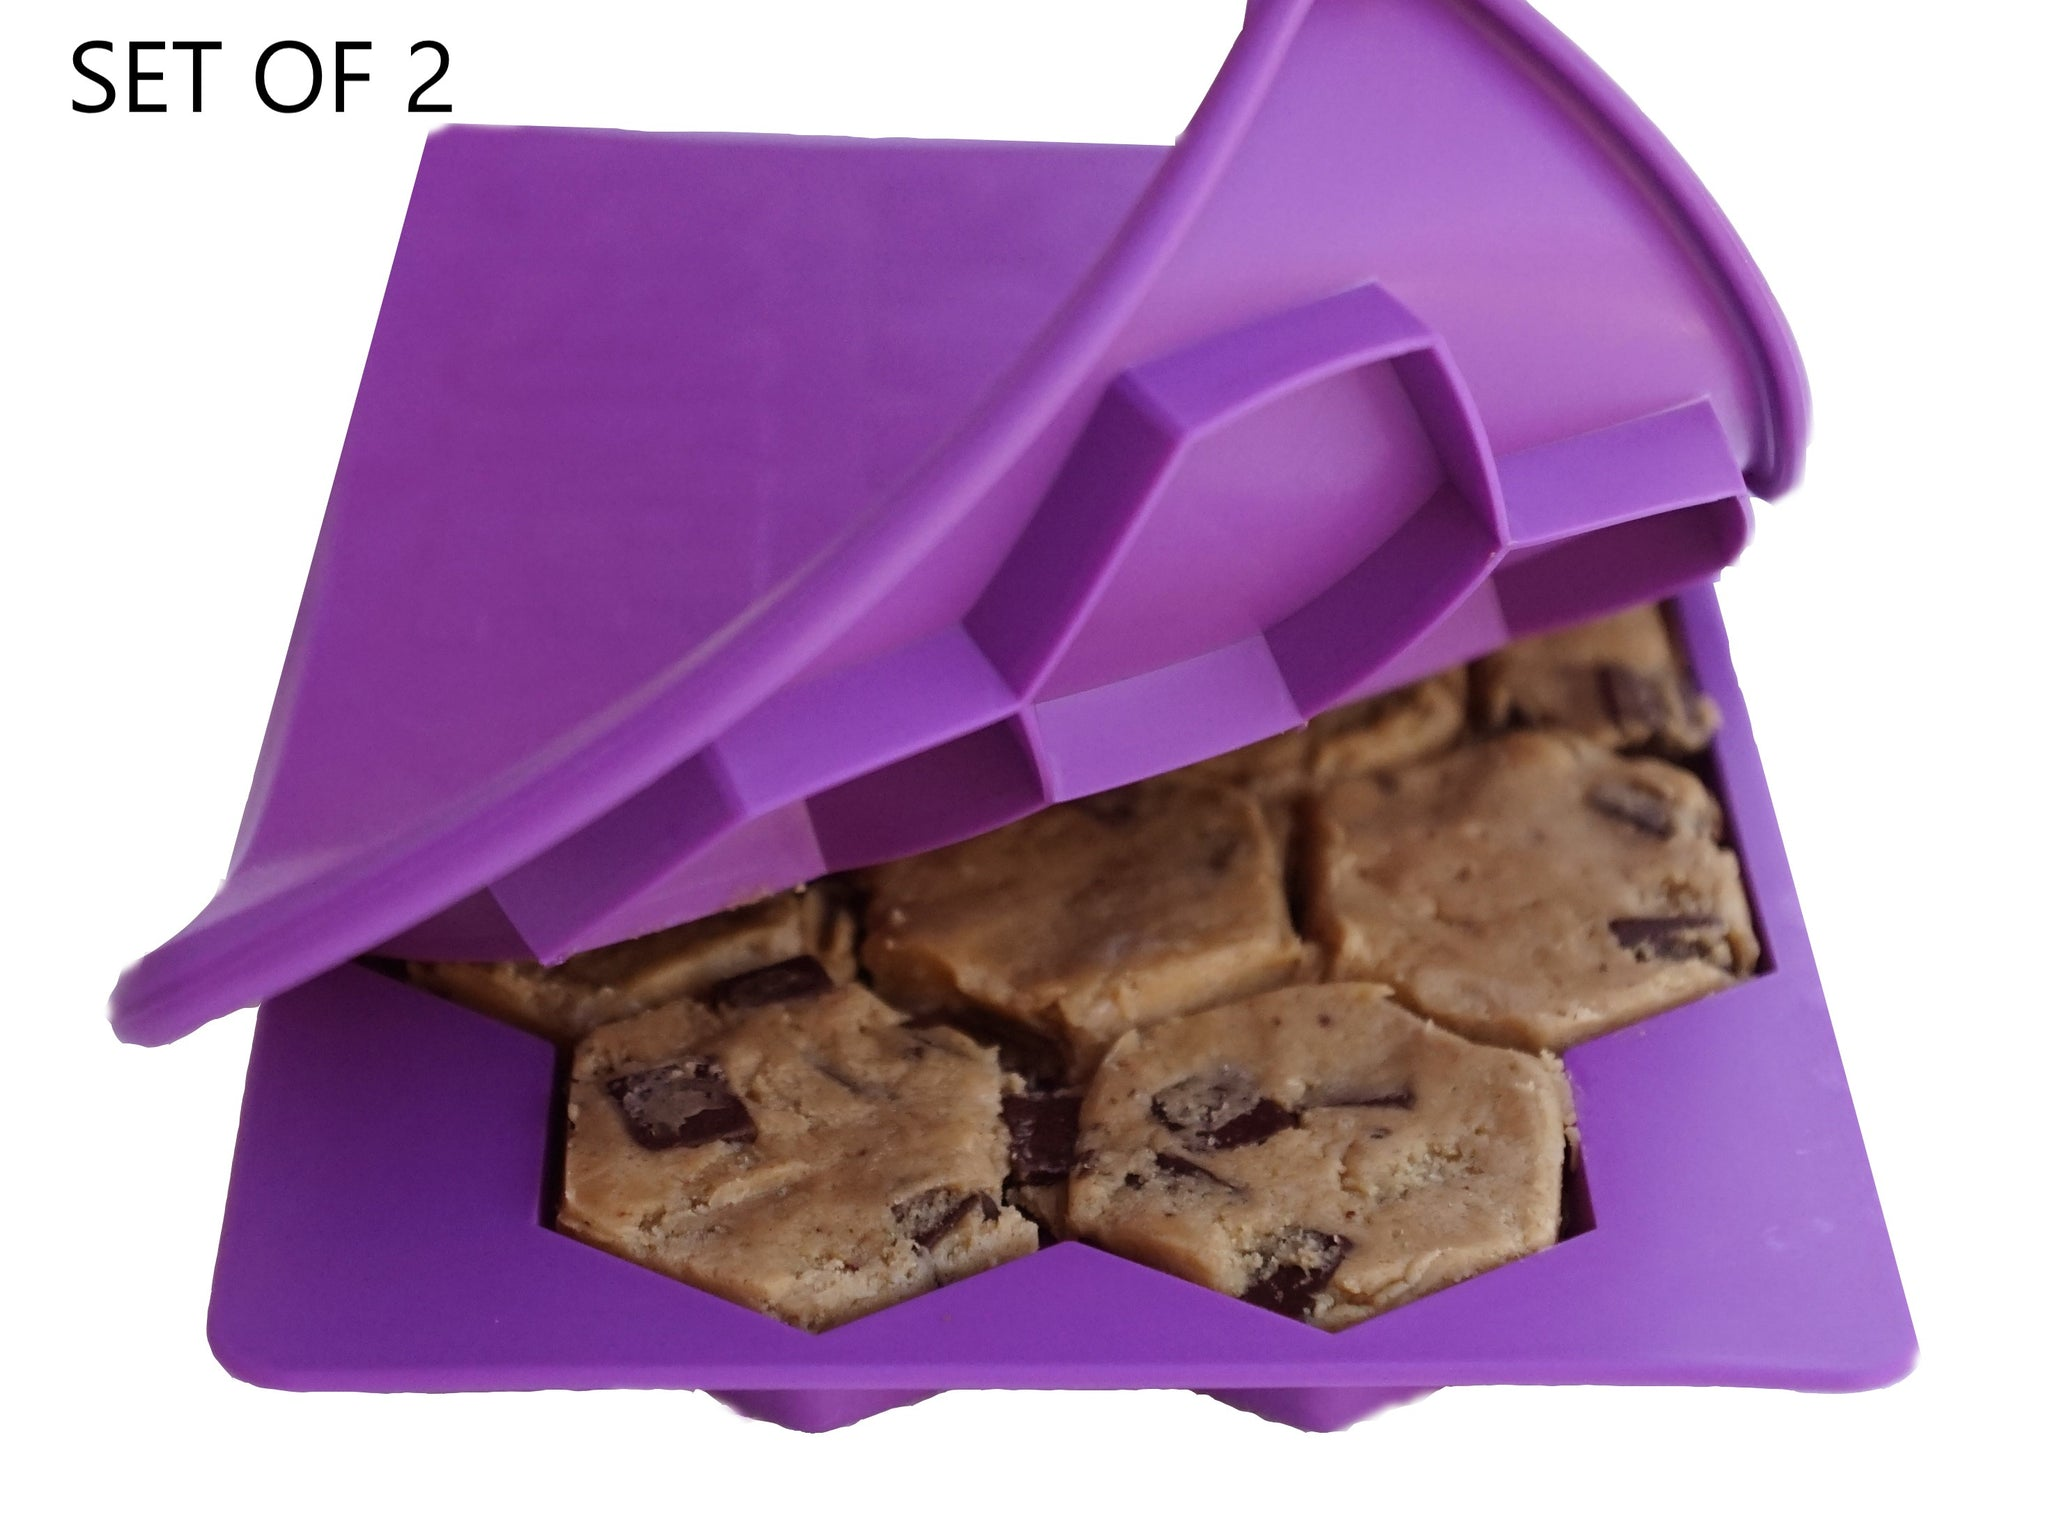 Opening a purple Smart Cookie